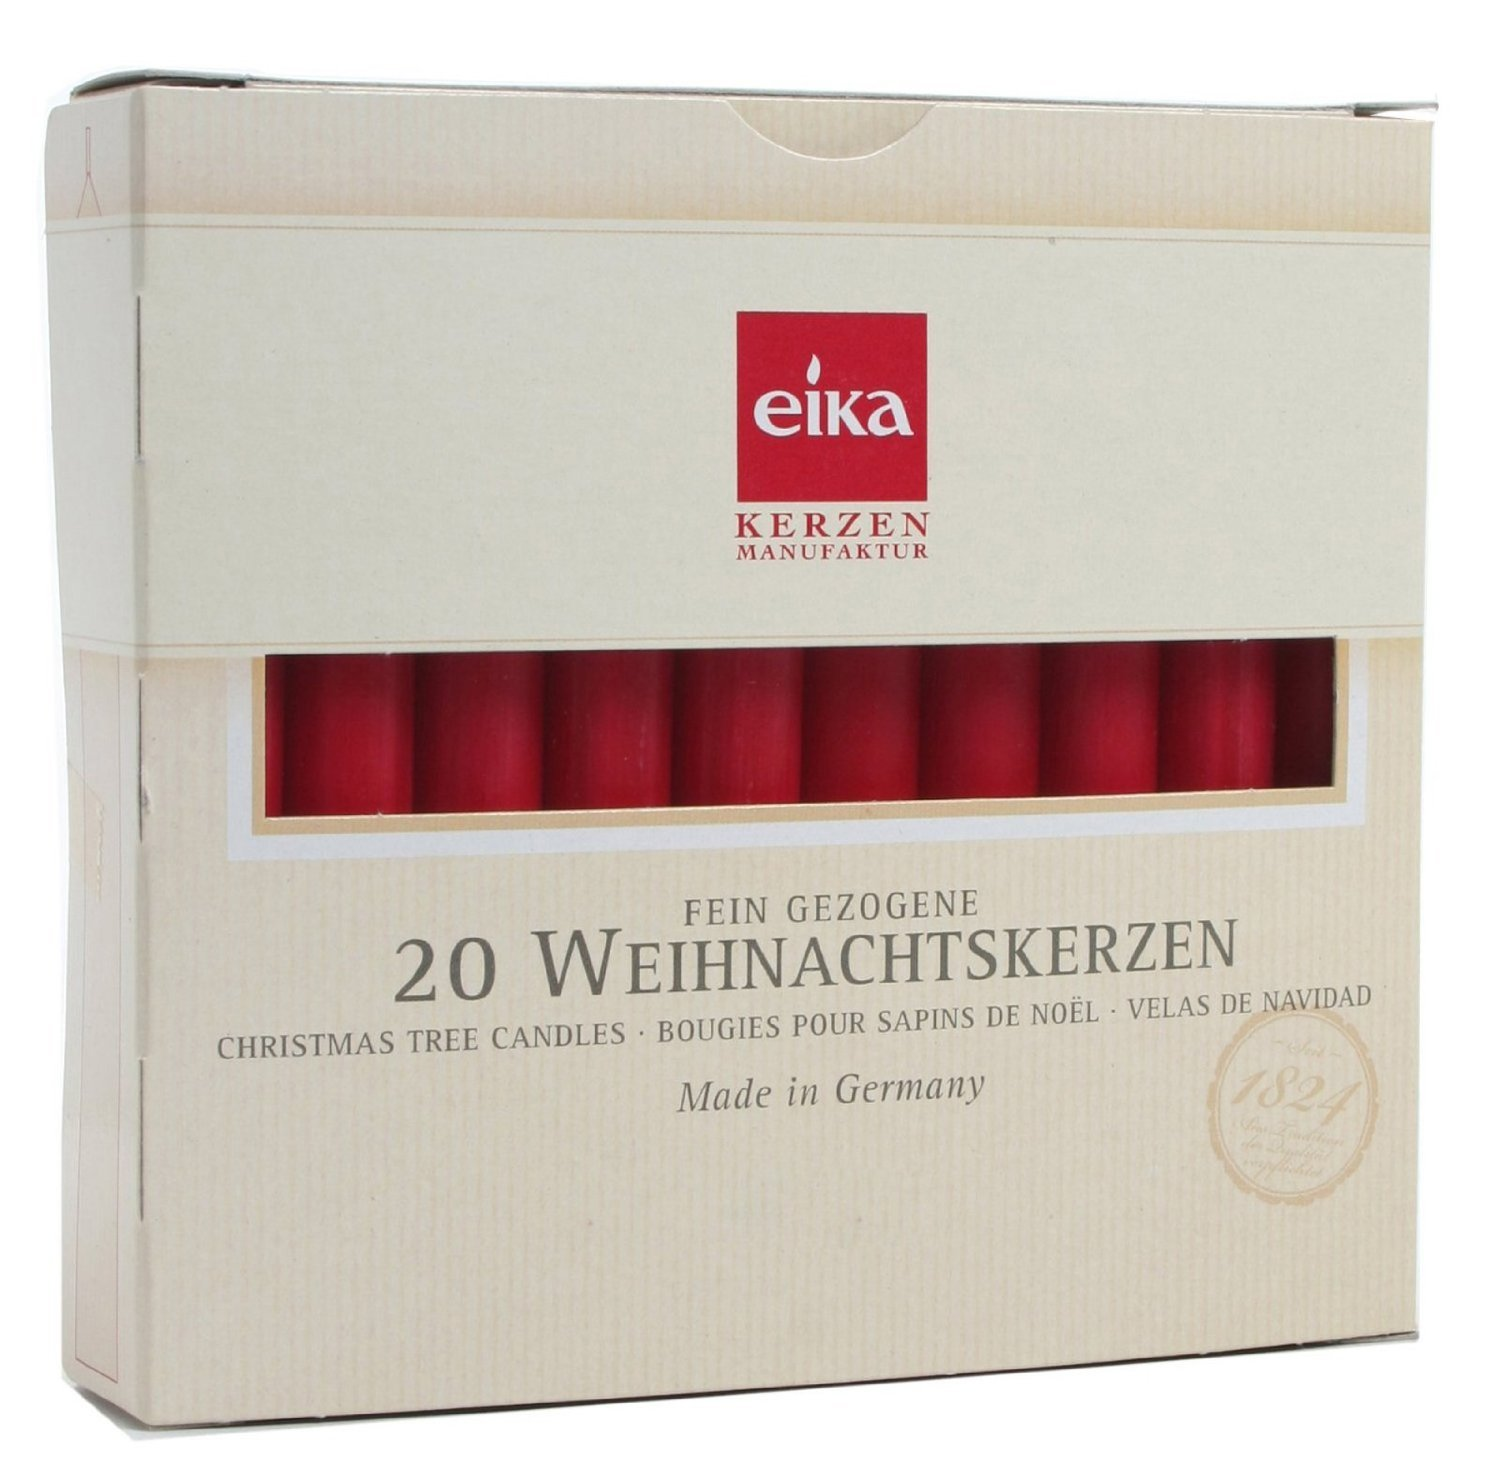 Eika Box of 20 finest Tree Candles - Solid colored - Made in Germany - Burgundy - Dark Red